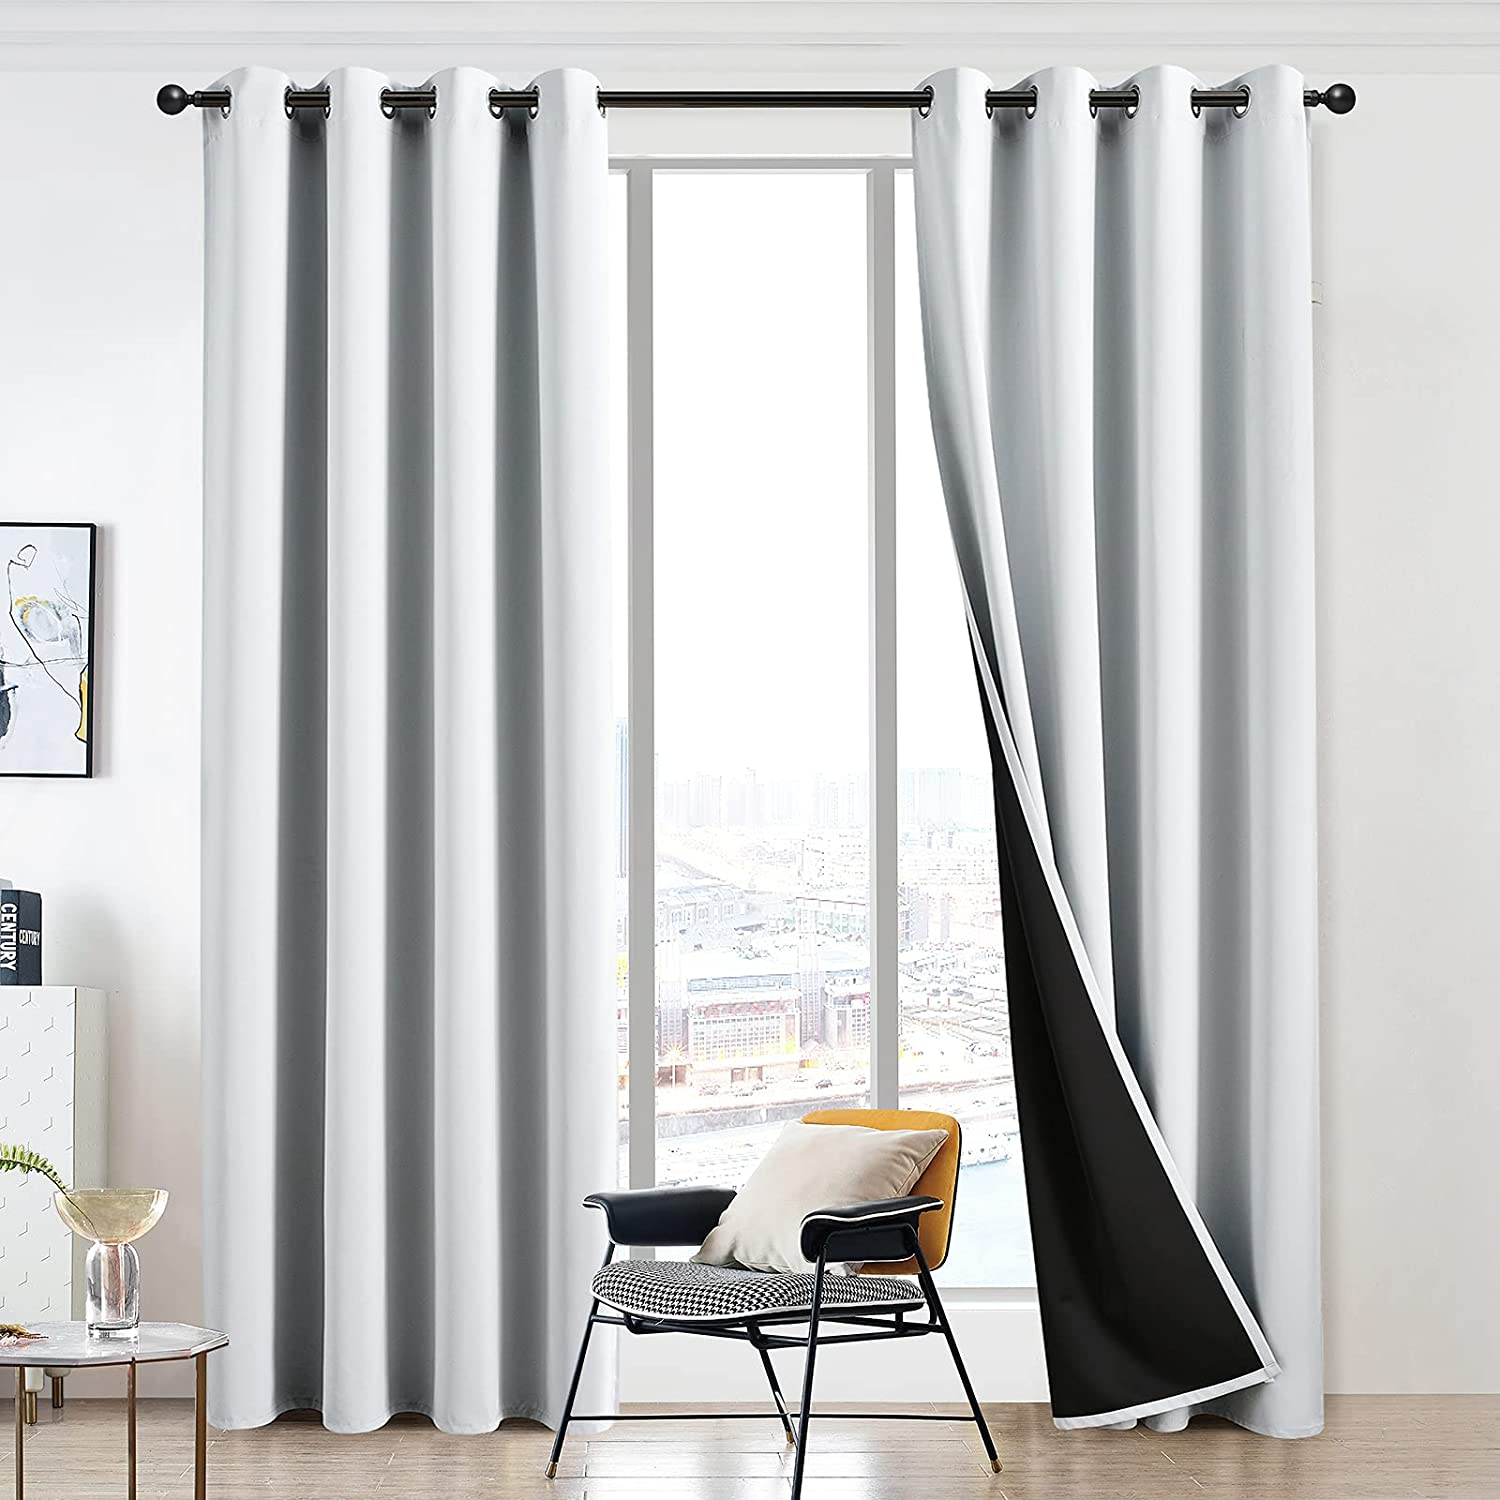 Mail order cheap JSFLY 100% Blackout Curtains 63 inch Easy-to-use for Bedroom Length N Thick